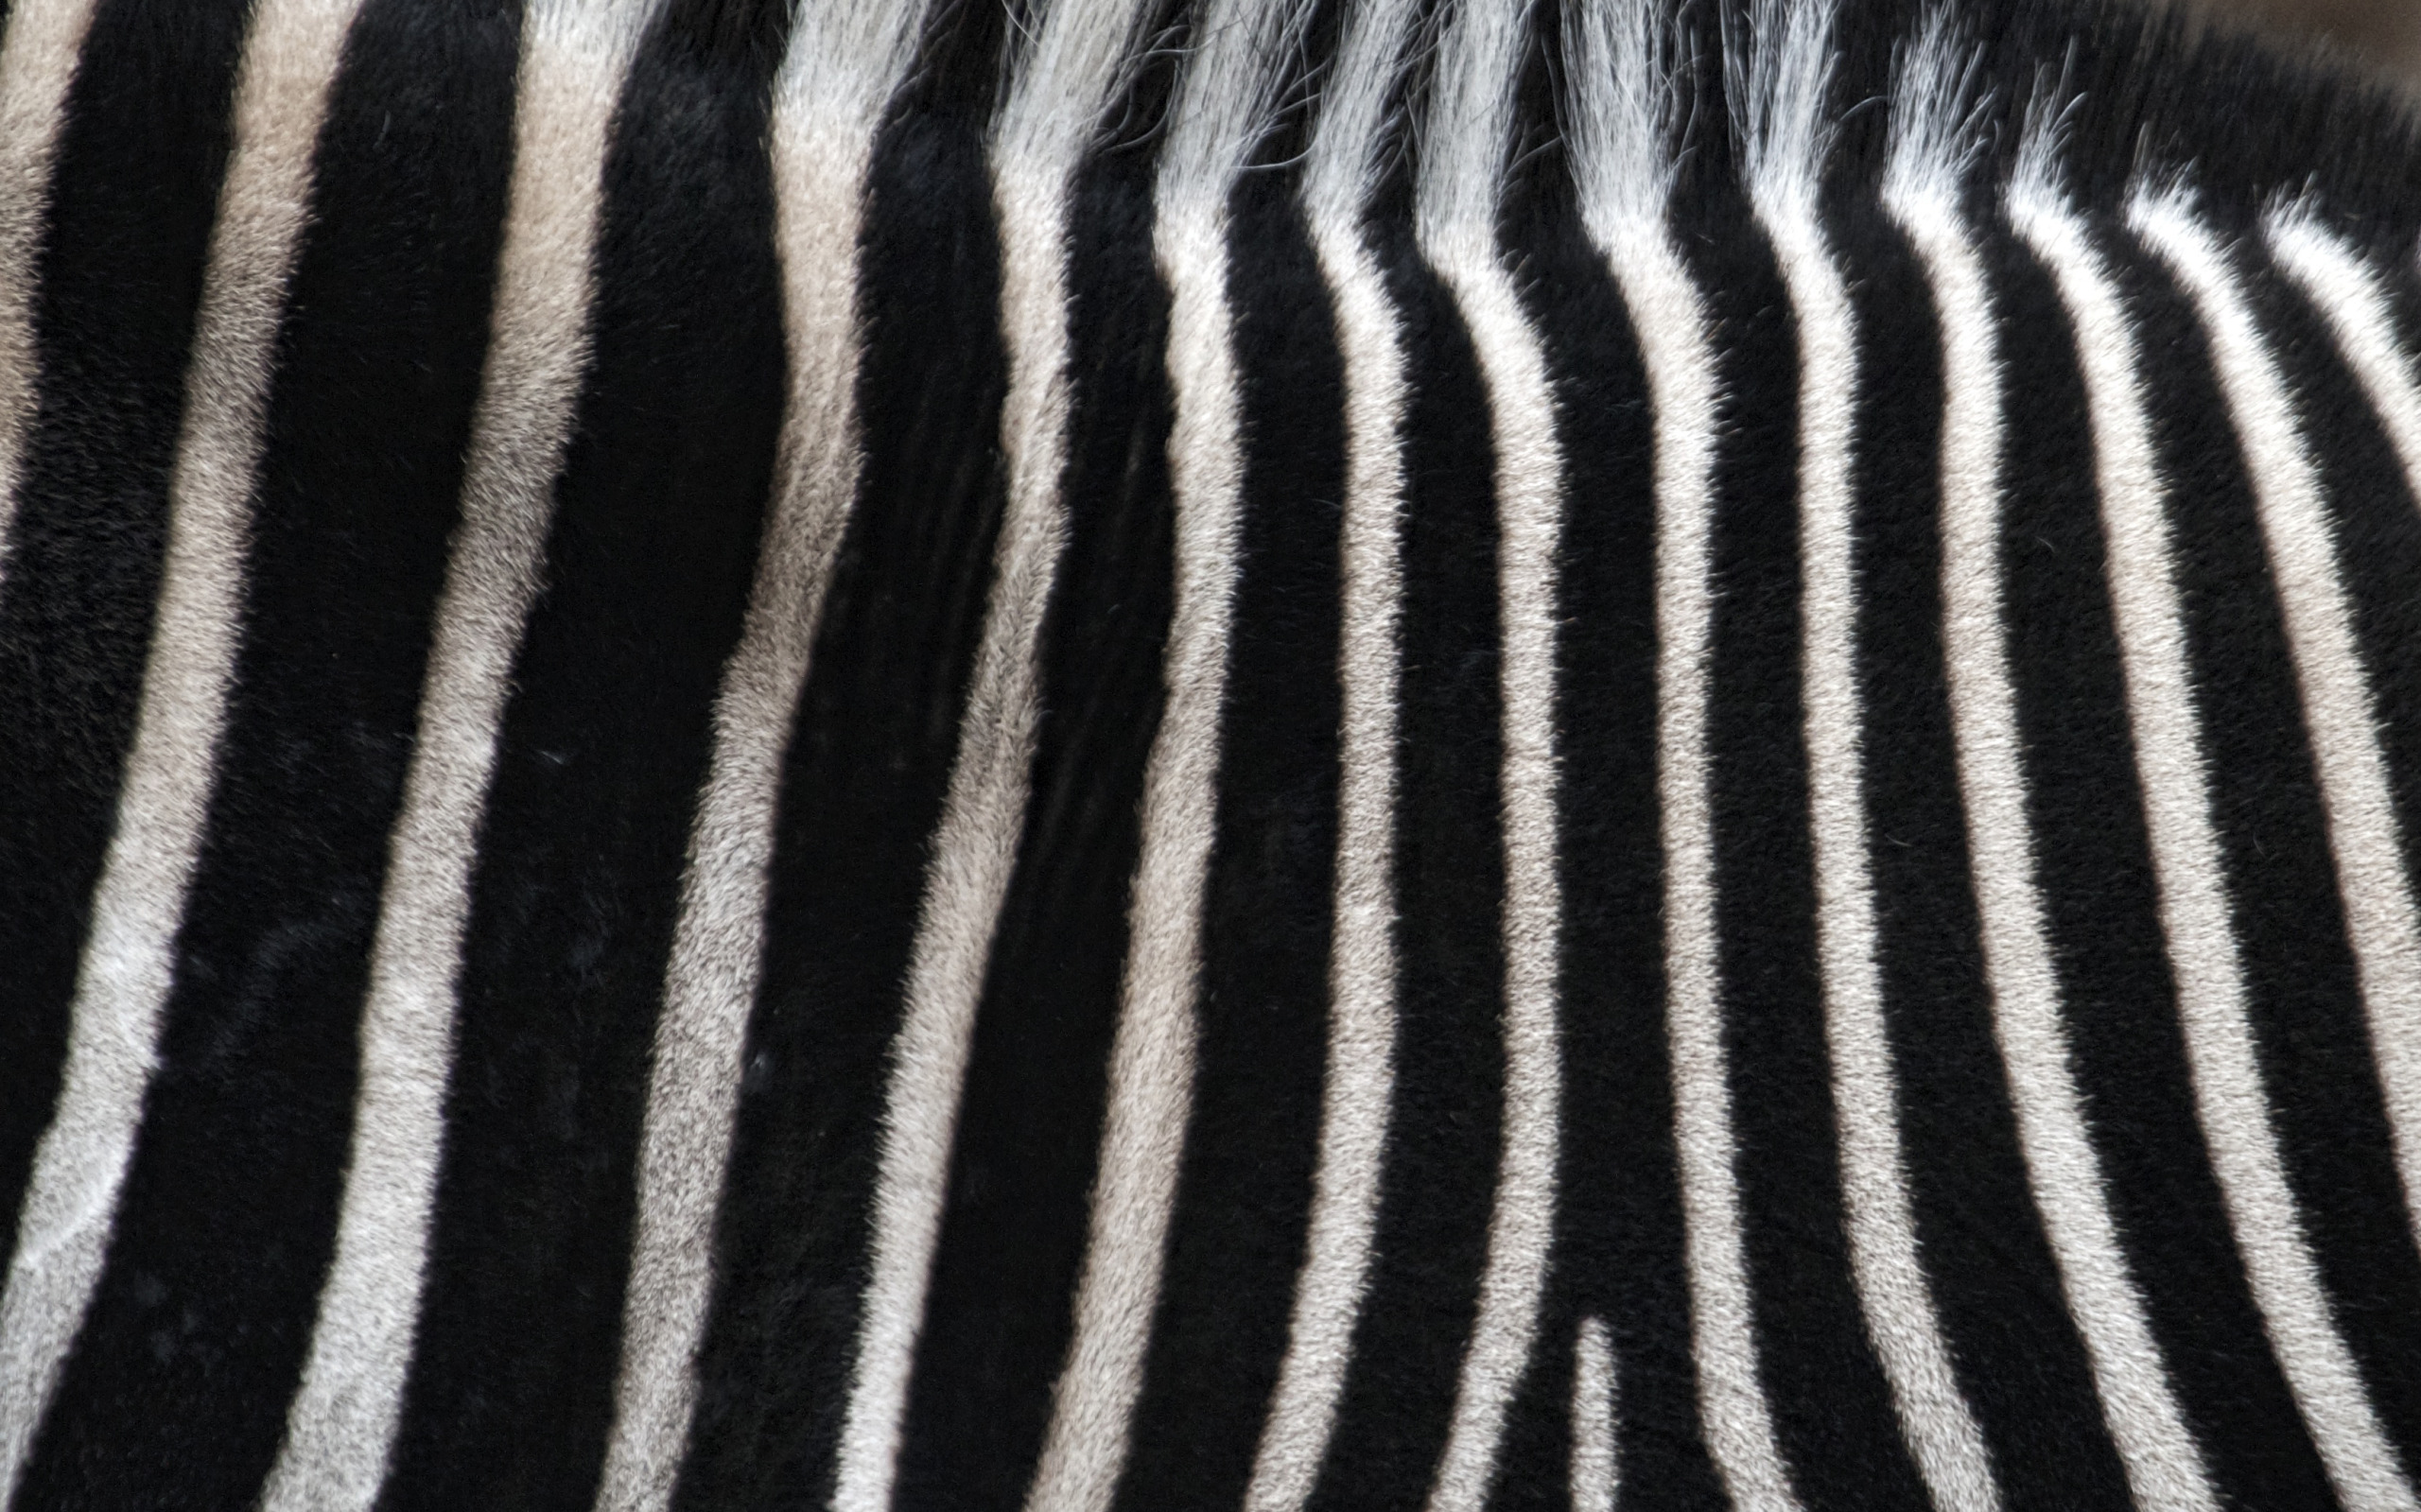 Download Zebra Stripes Wallpaper Gallery